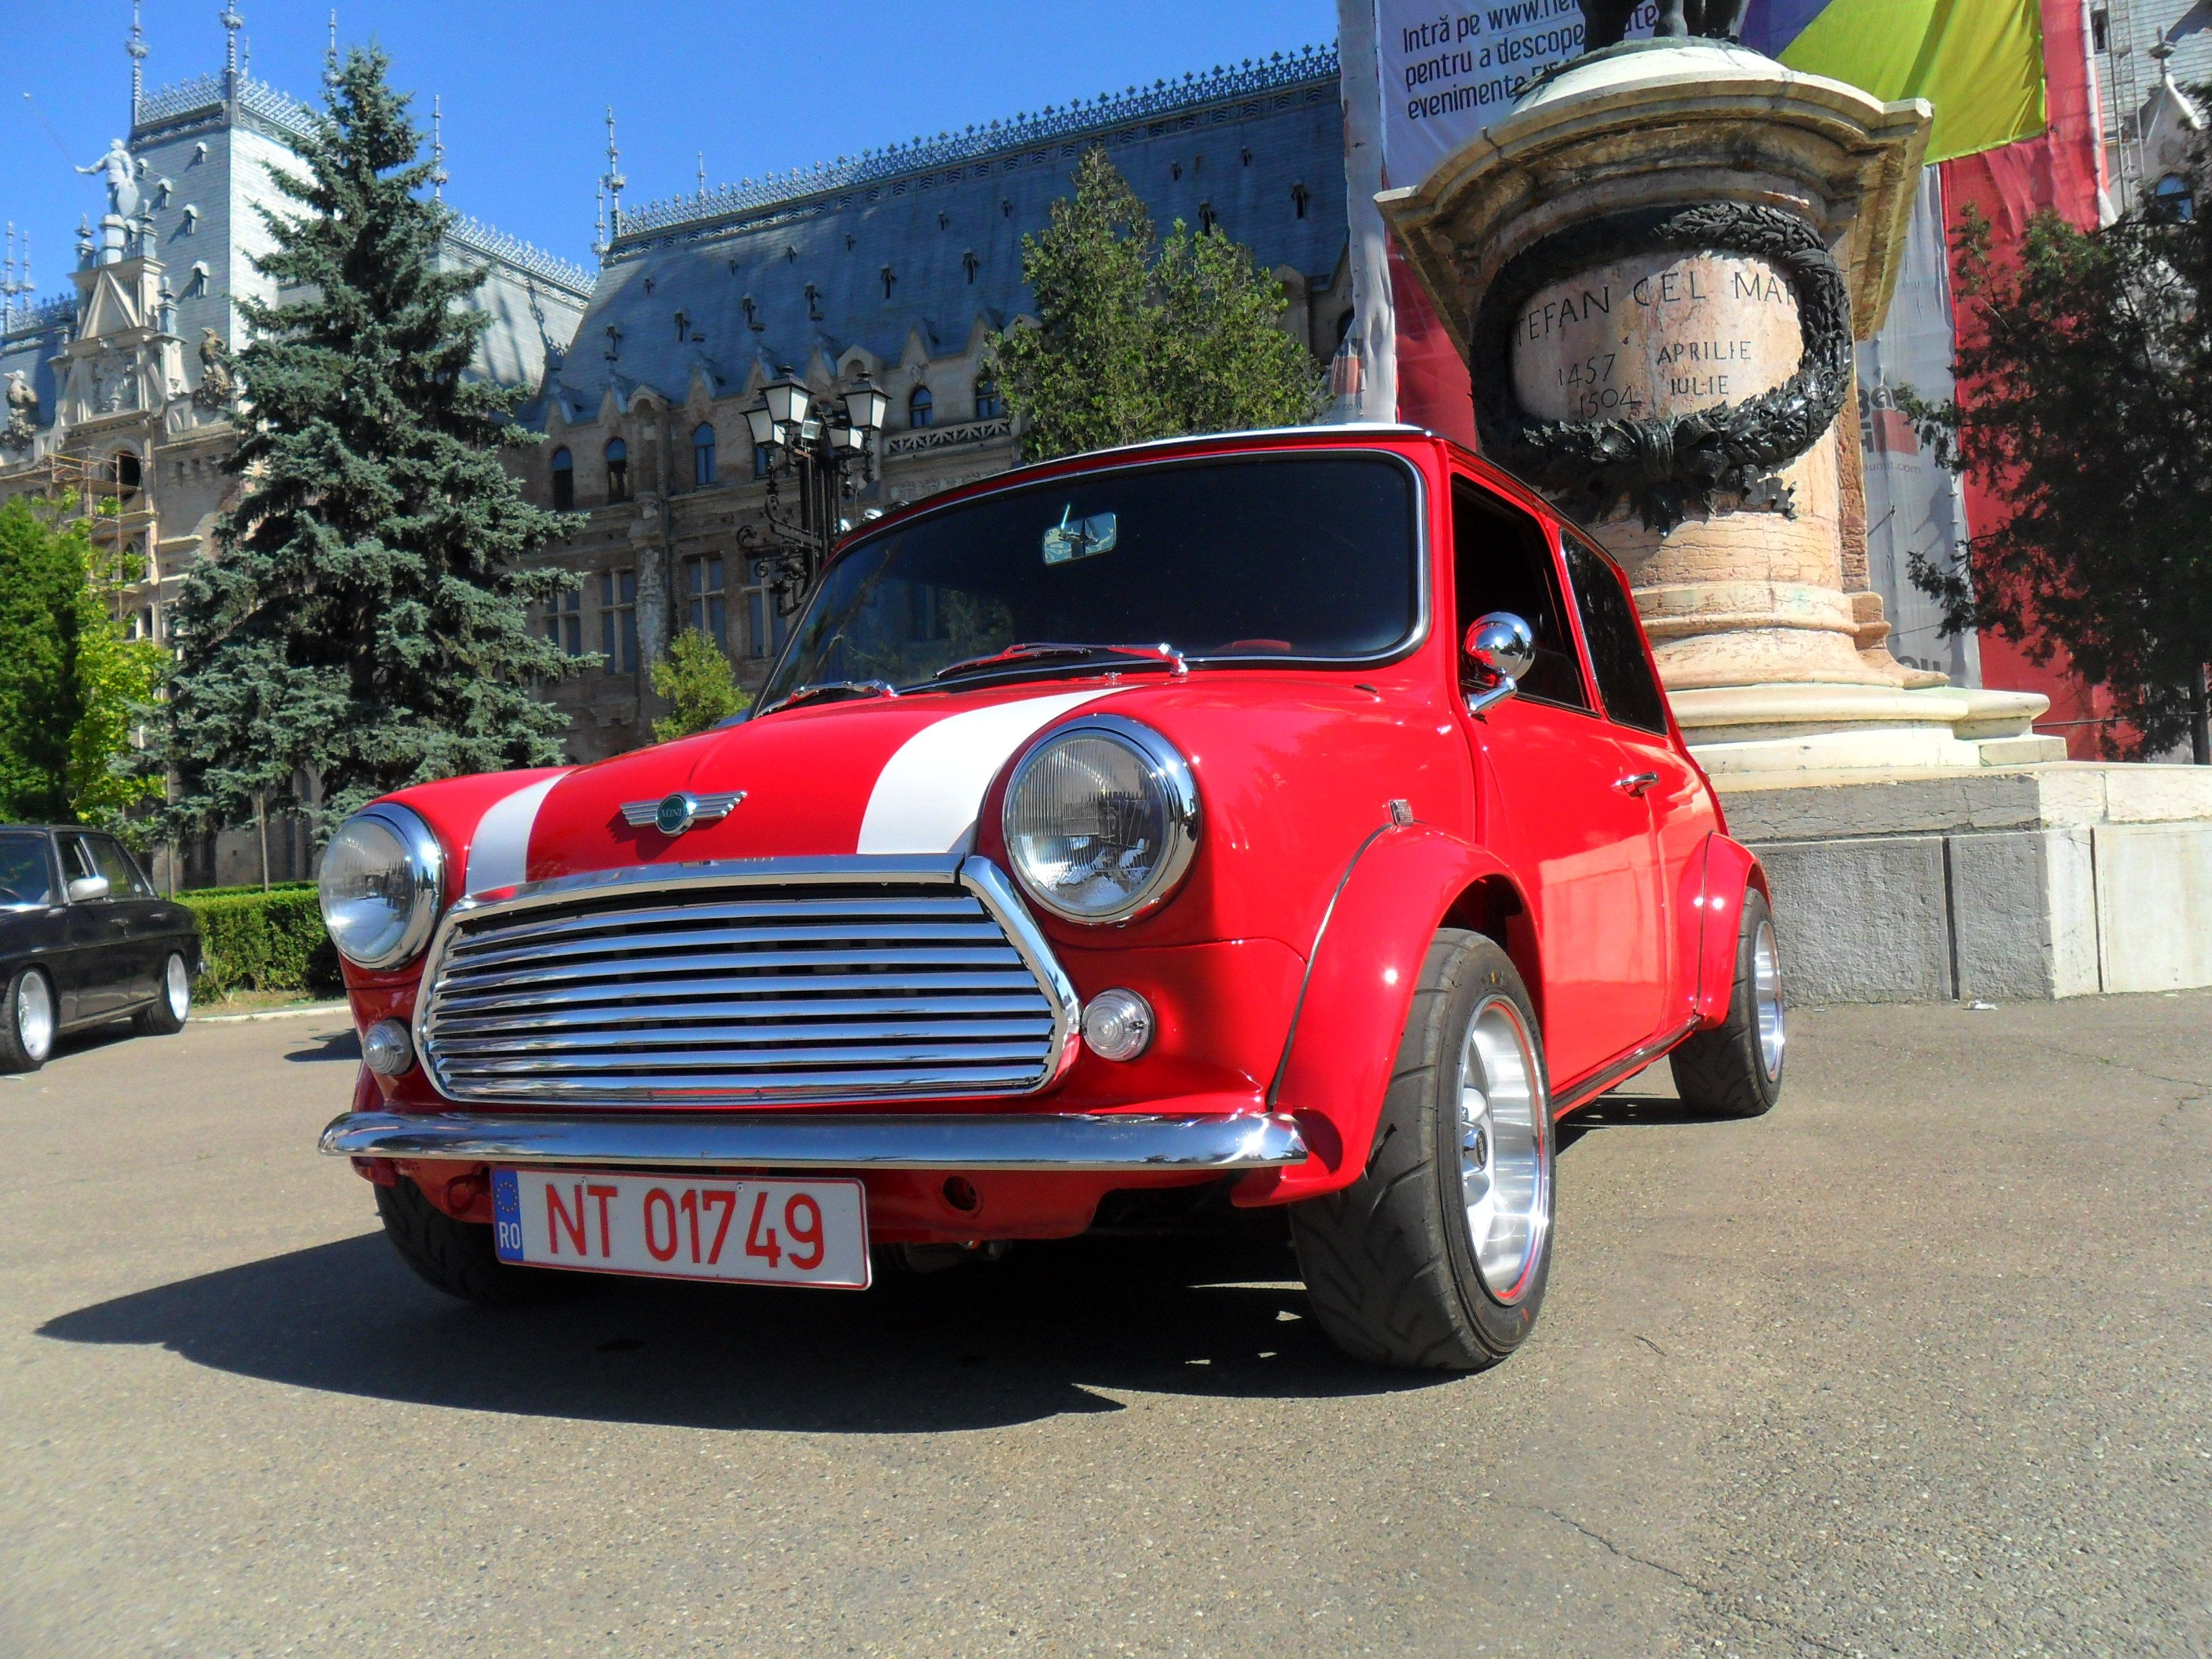 A Full List Of Mini 0 60 Amp Quarter Mile Times From 1981 To Today Including The Cooper Cooper S Jcw Clubman Paceman Countryman Mini Roadsters Bike Life